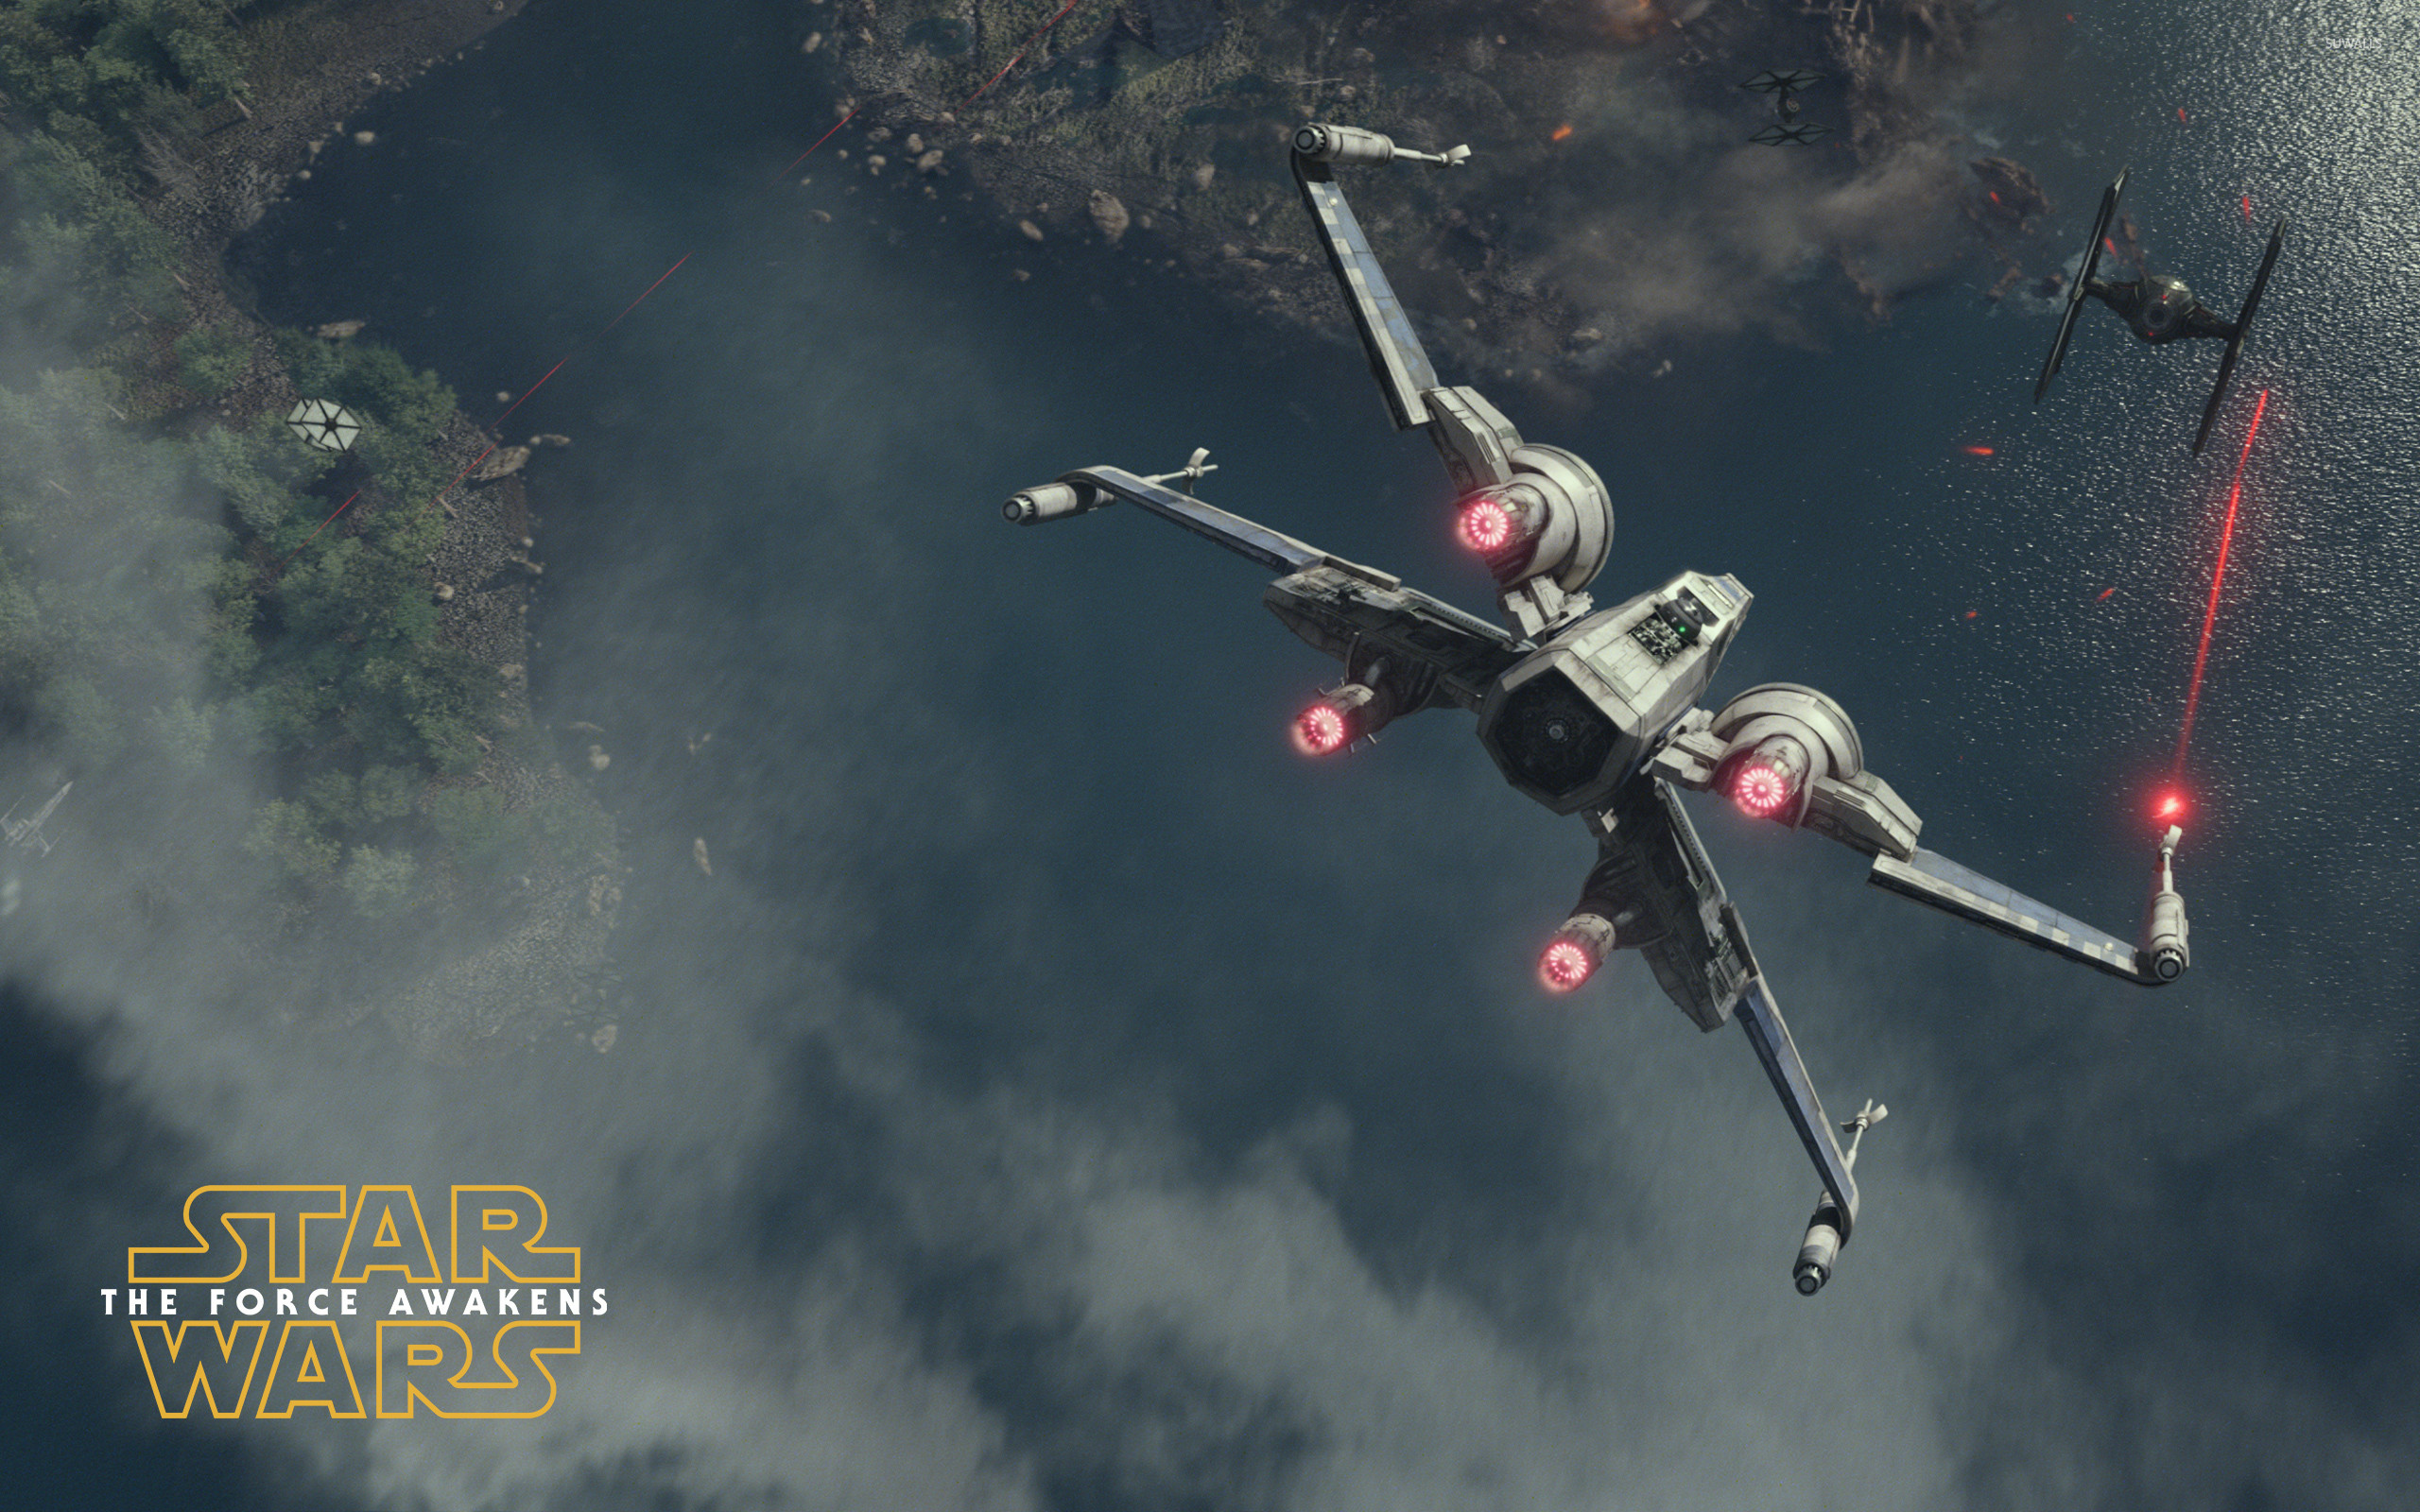 2560x1600 T-65 X-wing starfighter - Star Wars: The Force Awakens wallpaper